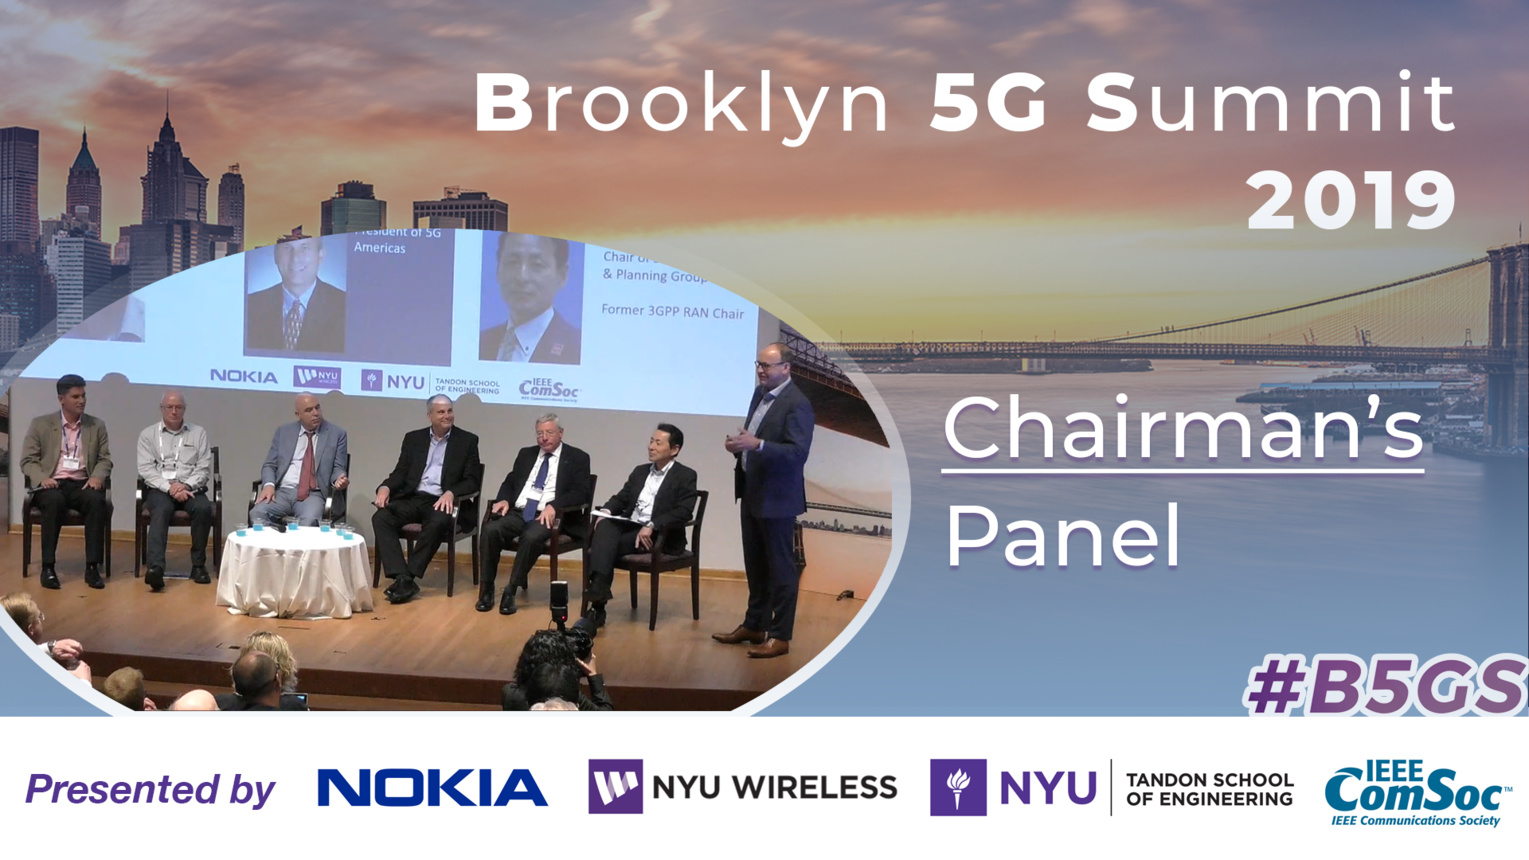 Chairmans Panel on 5G and B5G - B5GS 2019